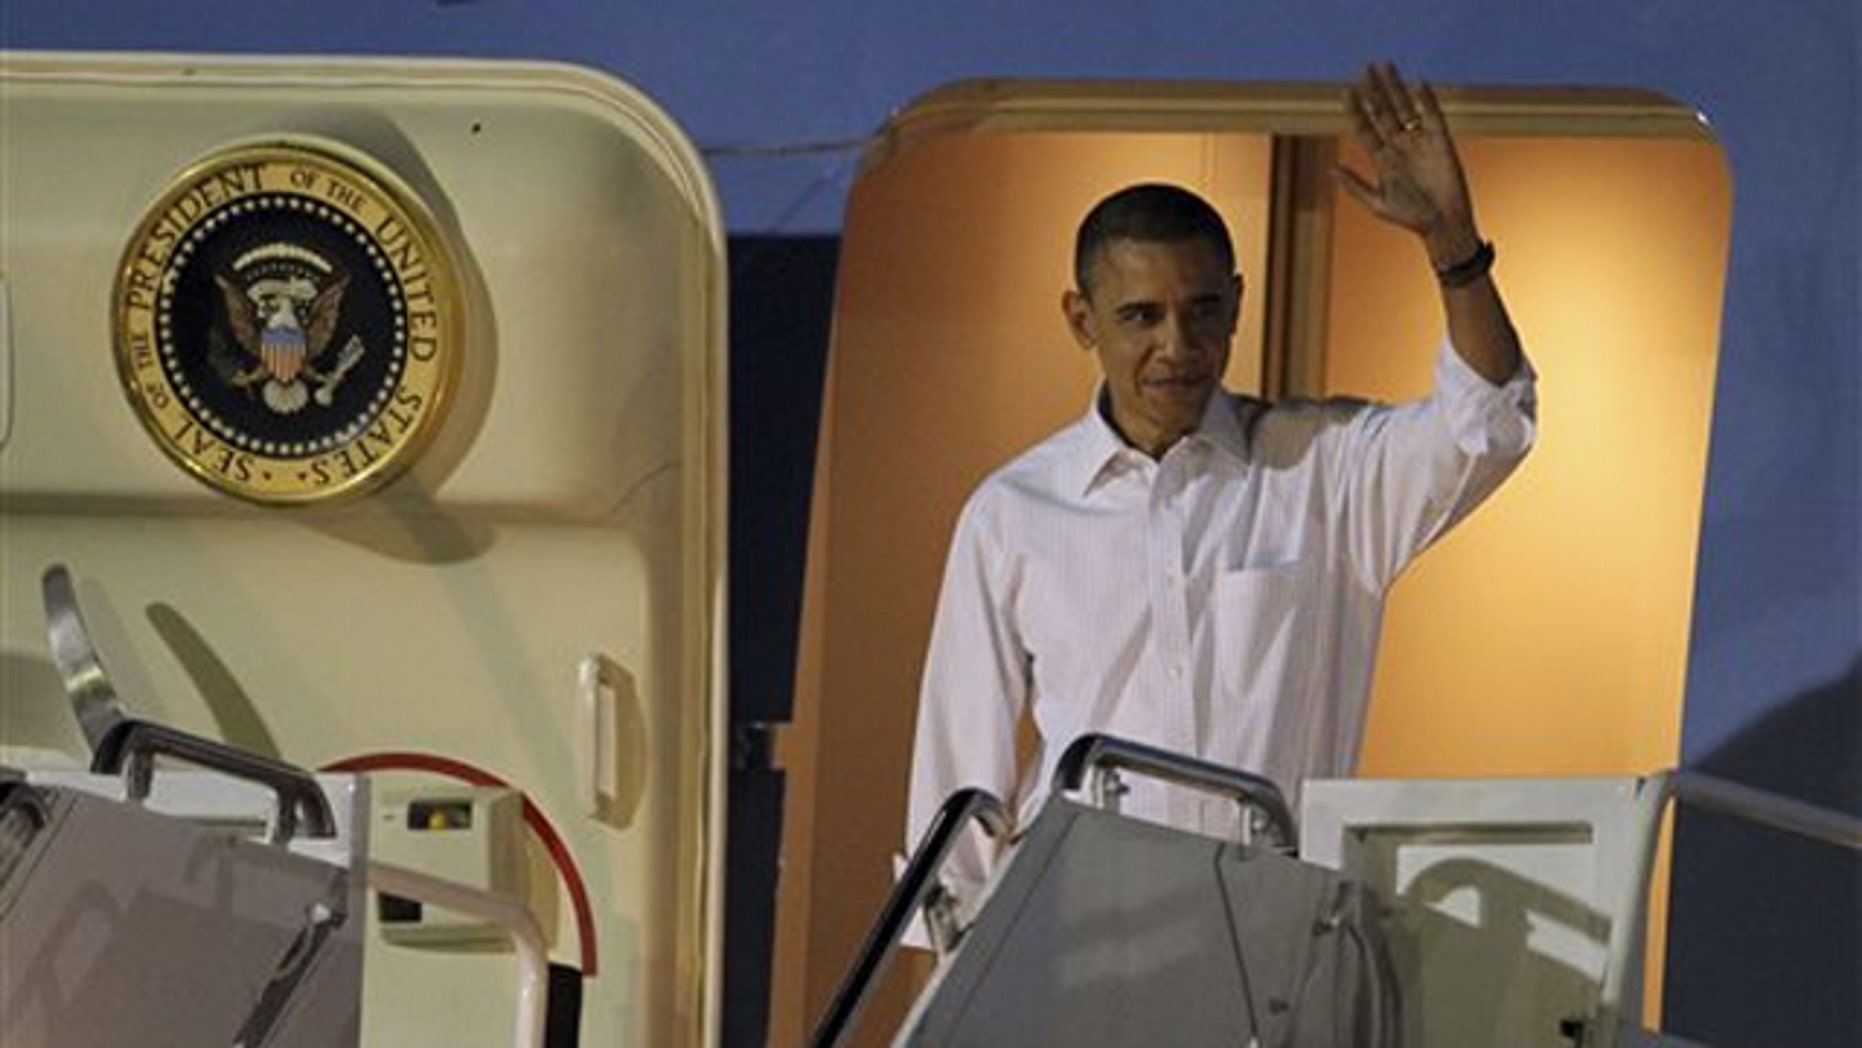 President Obama arrives at Hickam Air Force base in Honolulu, Hawaii, on Dec. 22.